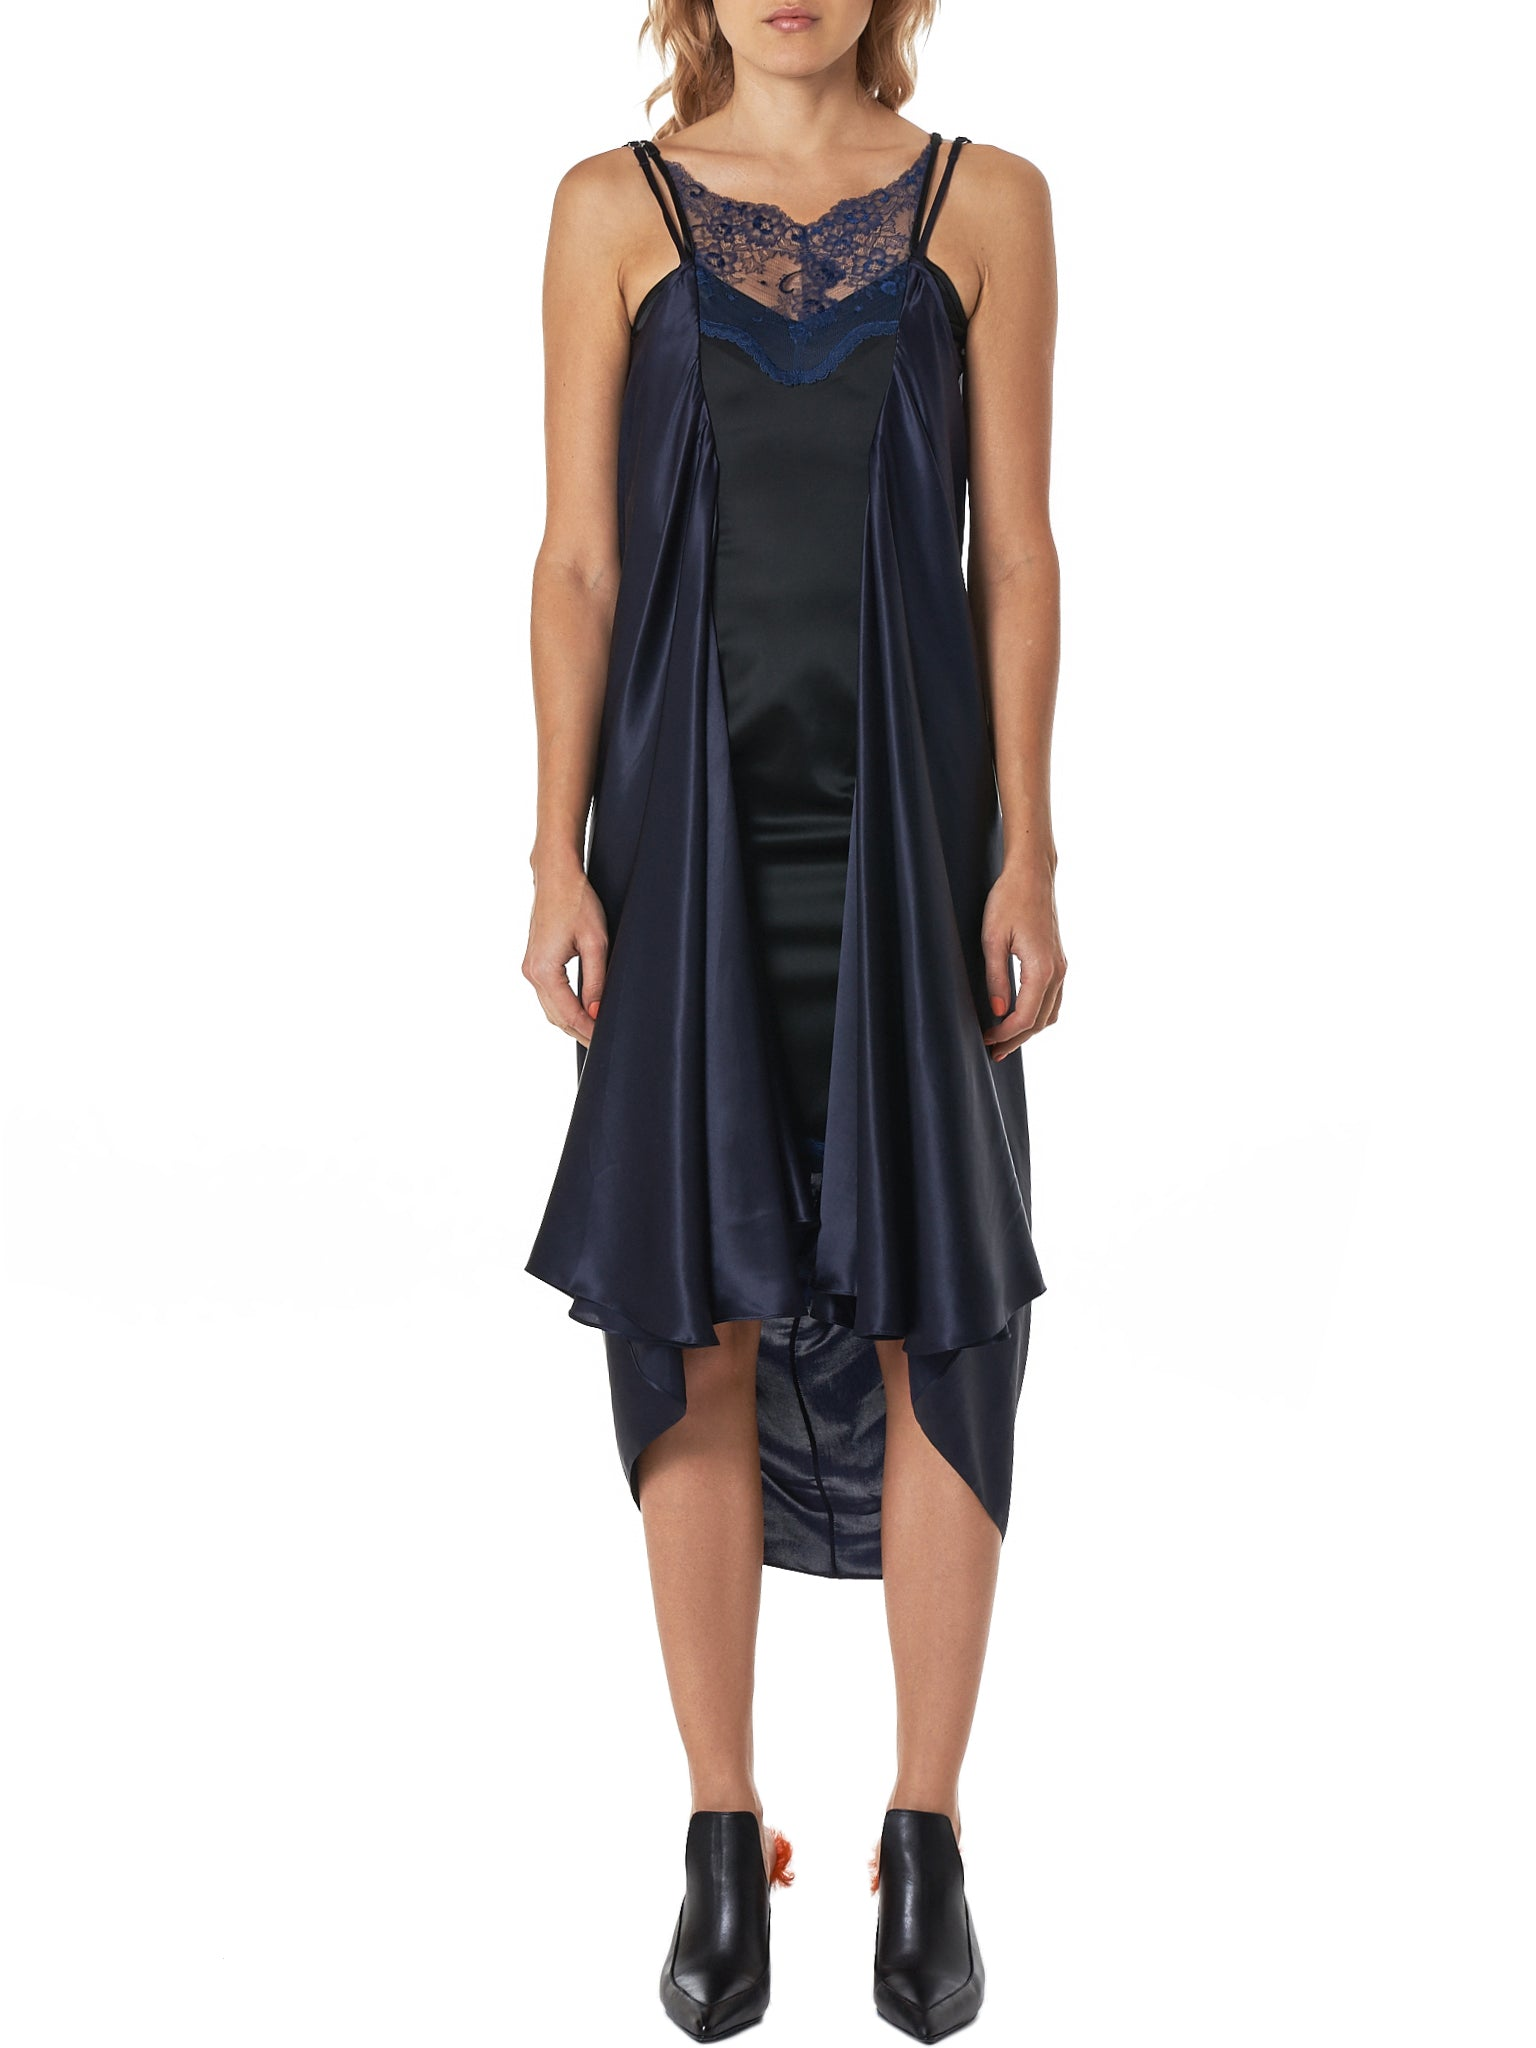 Layered Slip Dress (WDRESS41-F57-BLACK-NAVY)